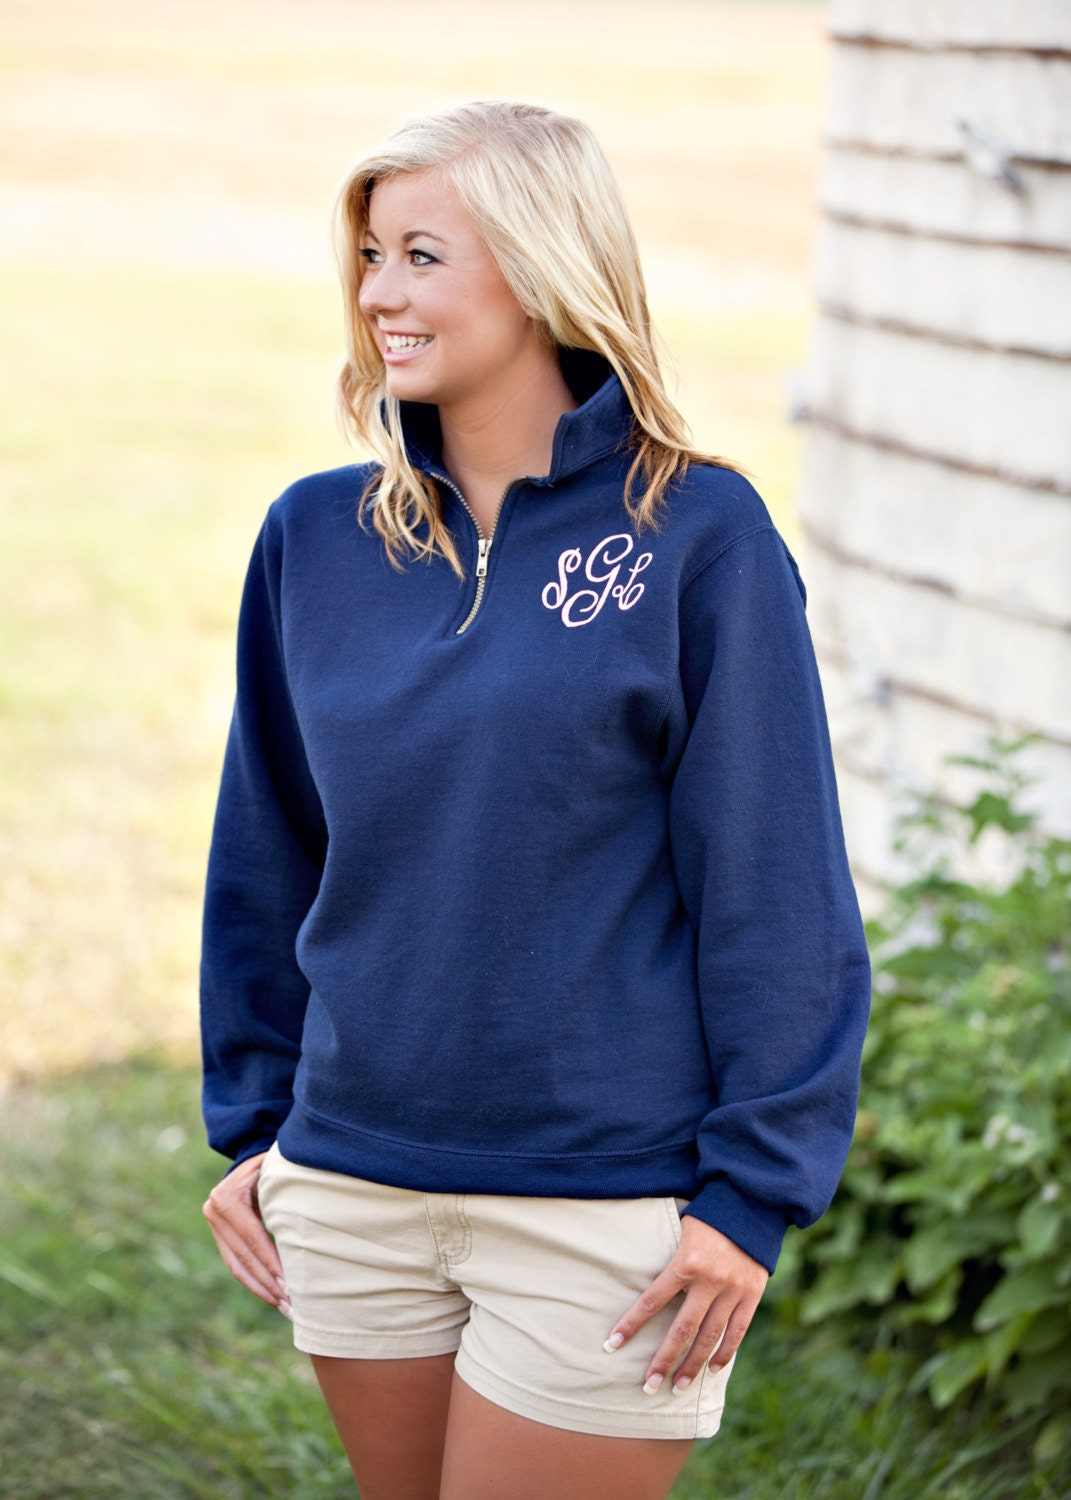 Like this item? - SALE Monogrammed Pullover Sweatshirt 1/4 Zip Monogrammed